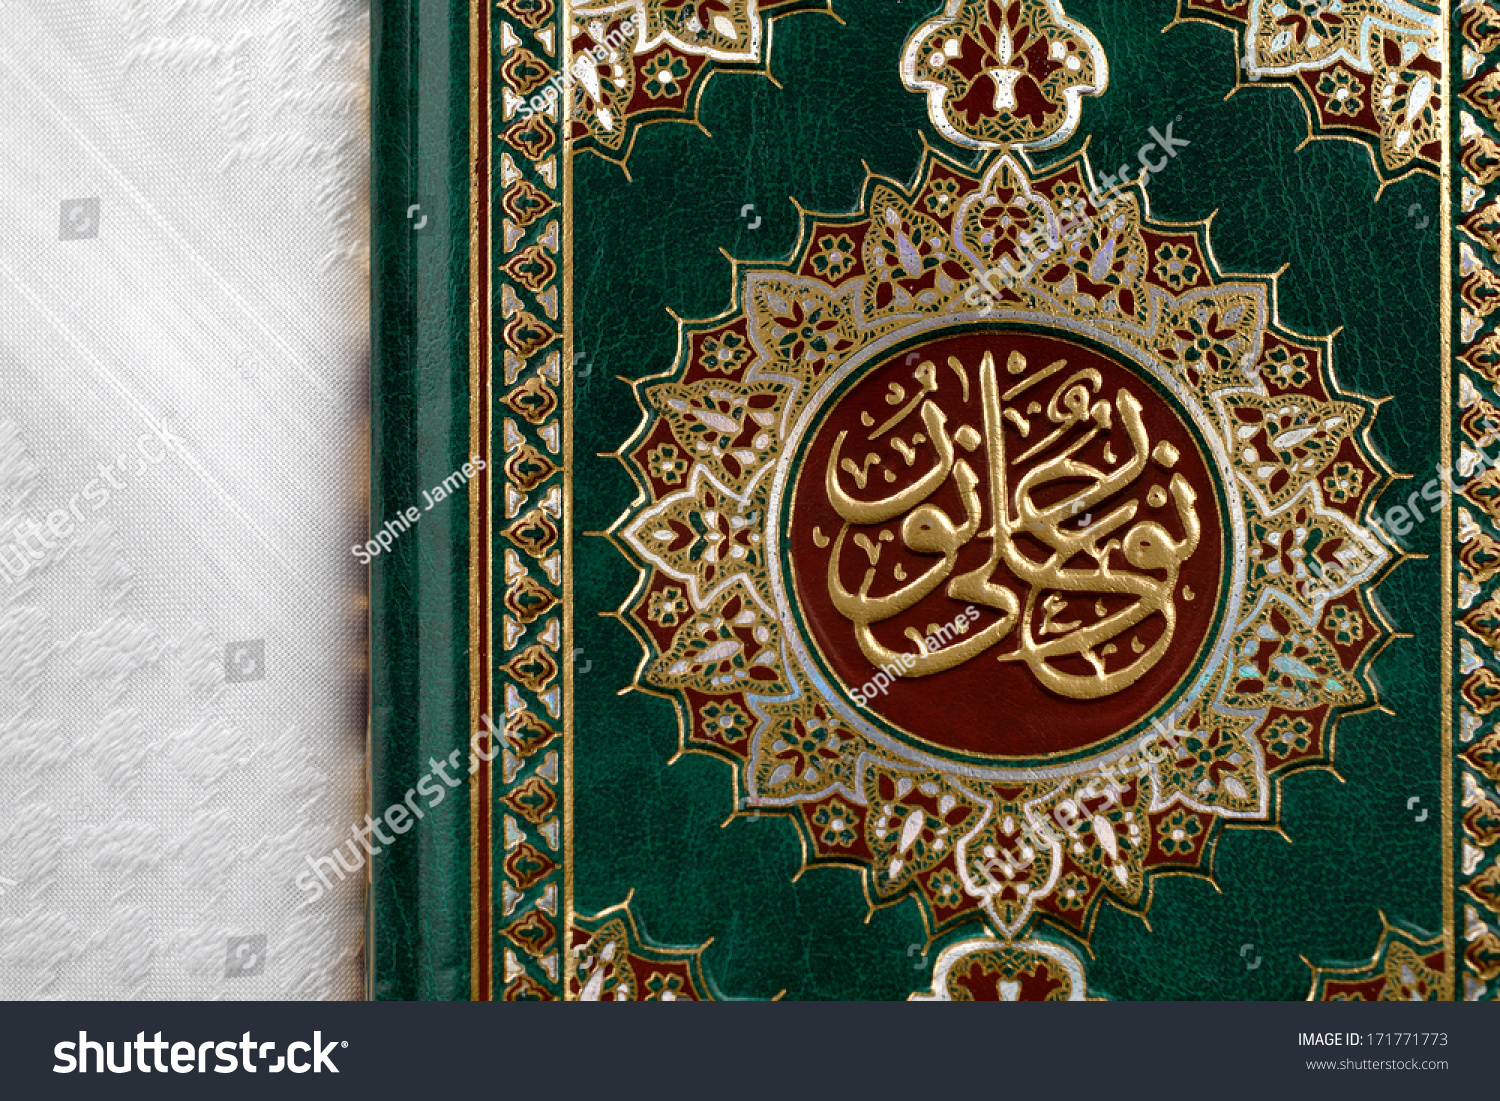 Quran Literally Meaning Recitation Central Religious Stock Photo